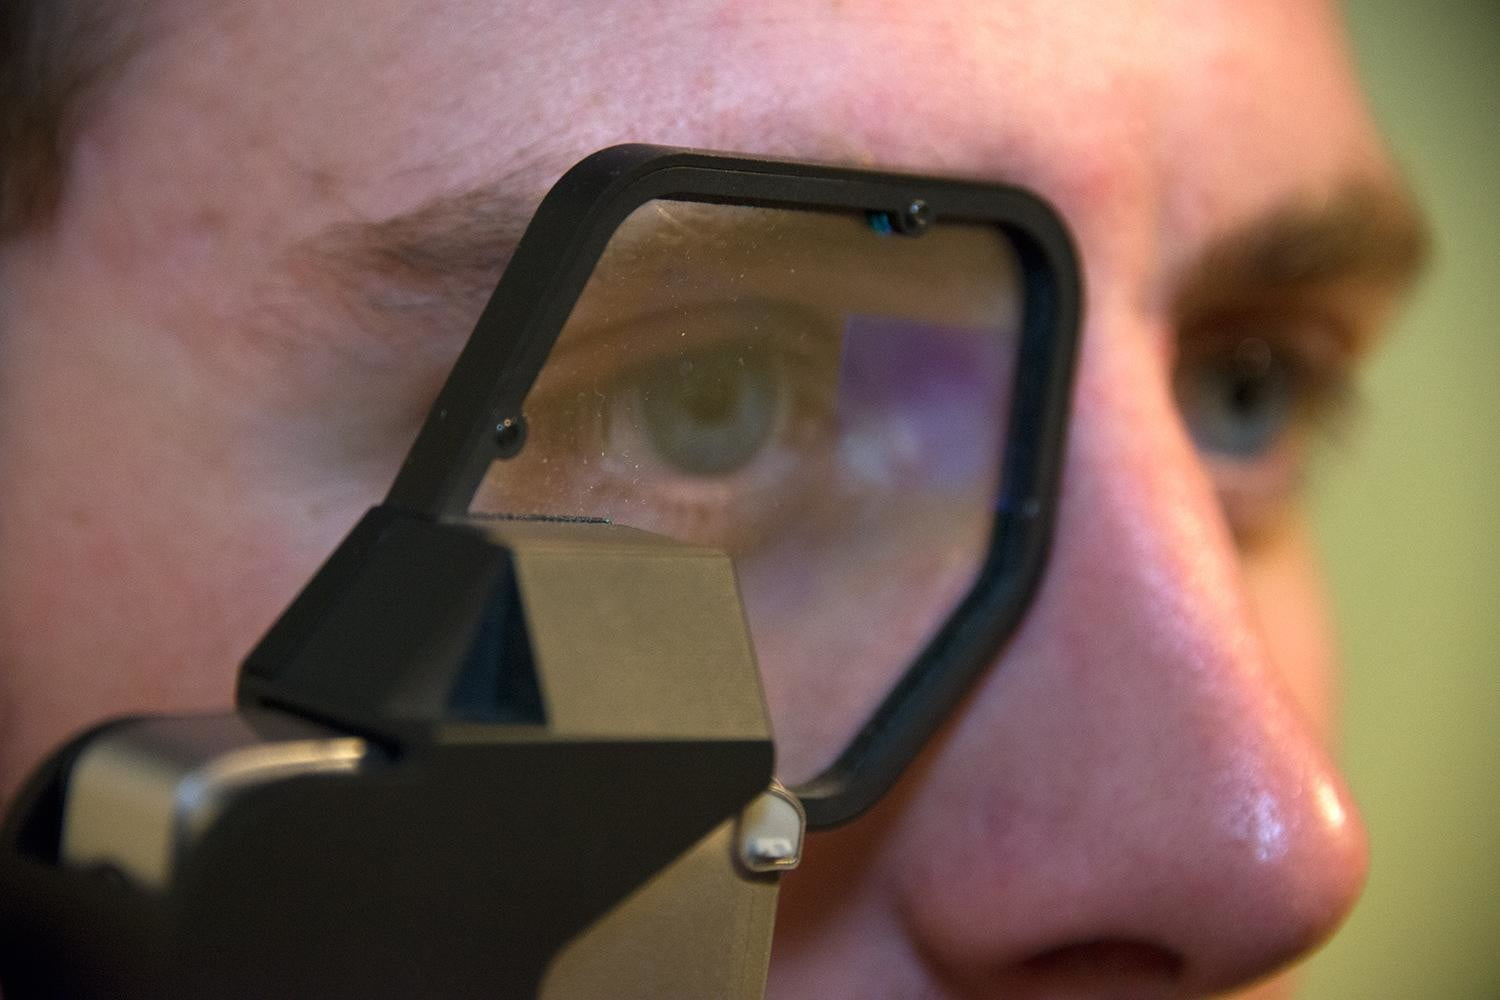 Google Glass meets Kinect in ARI